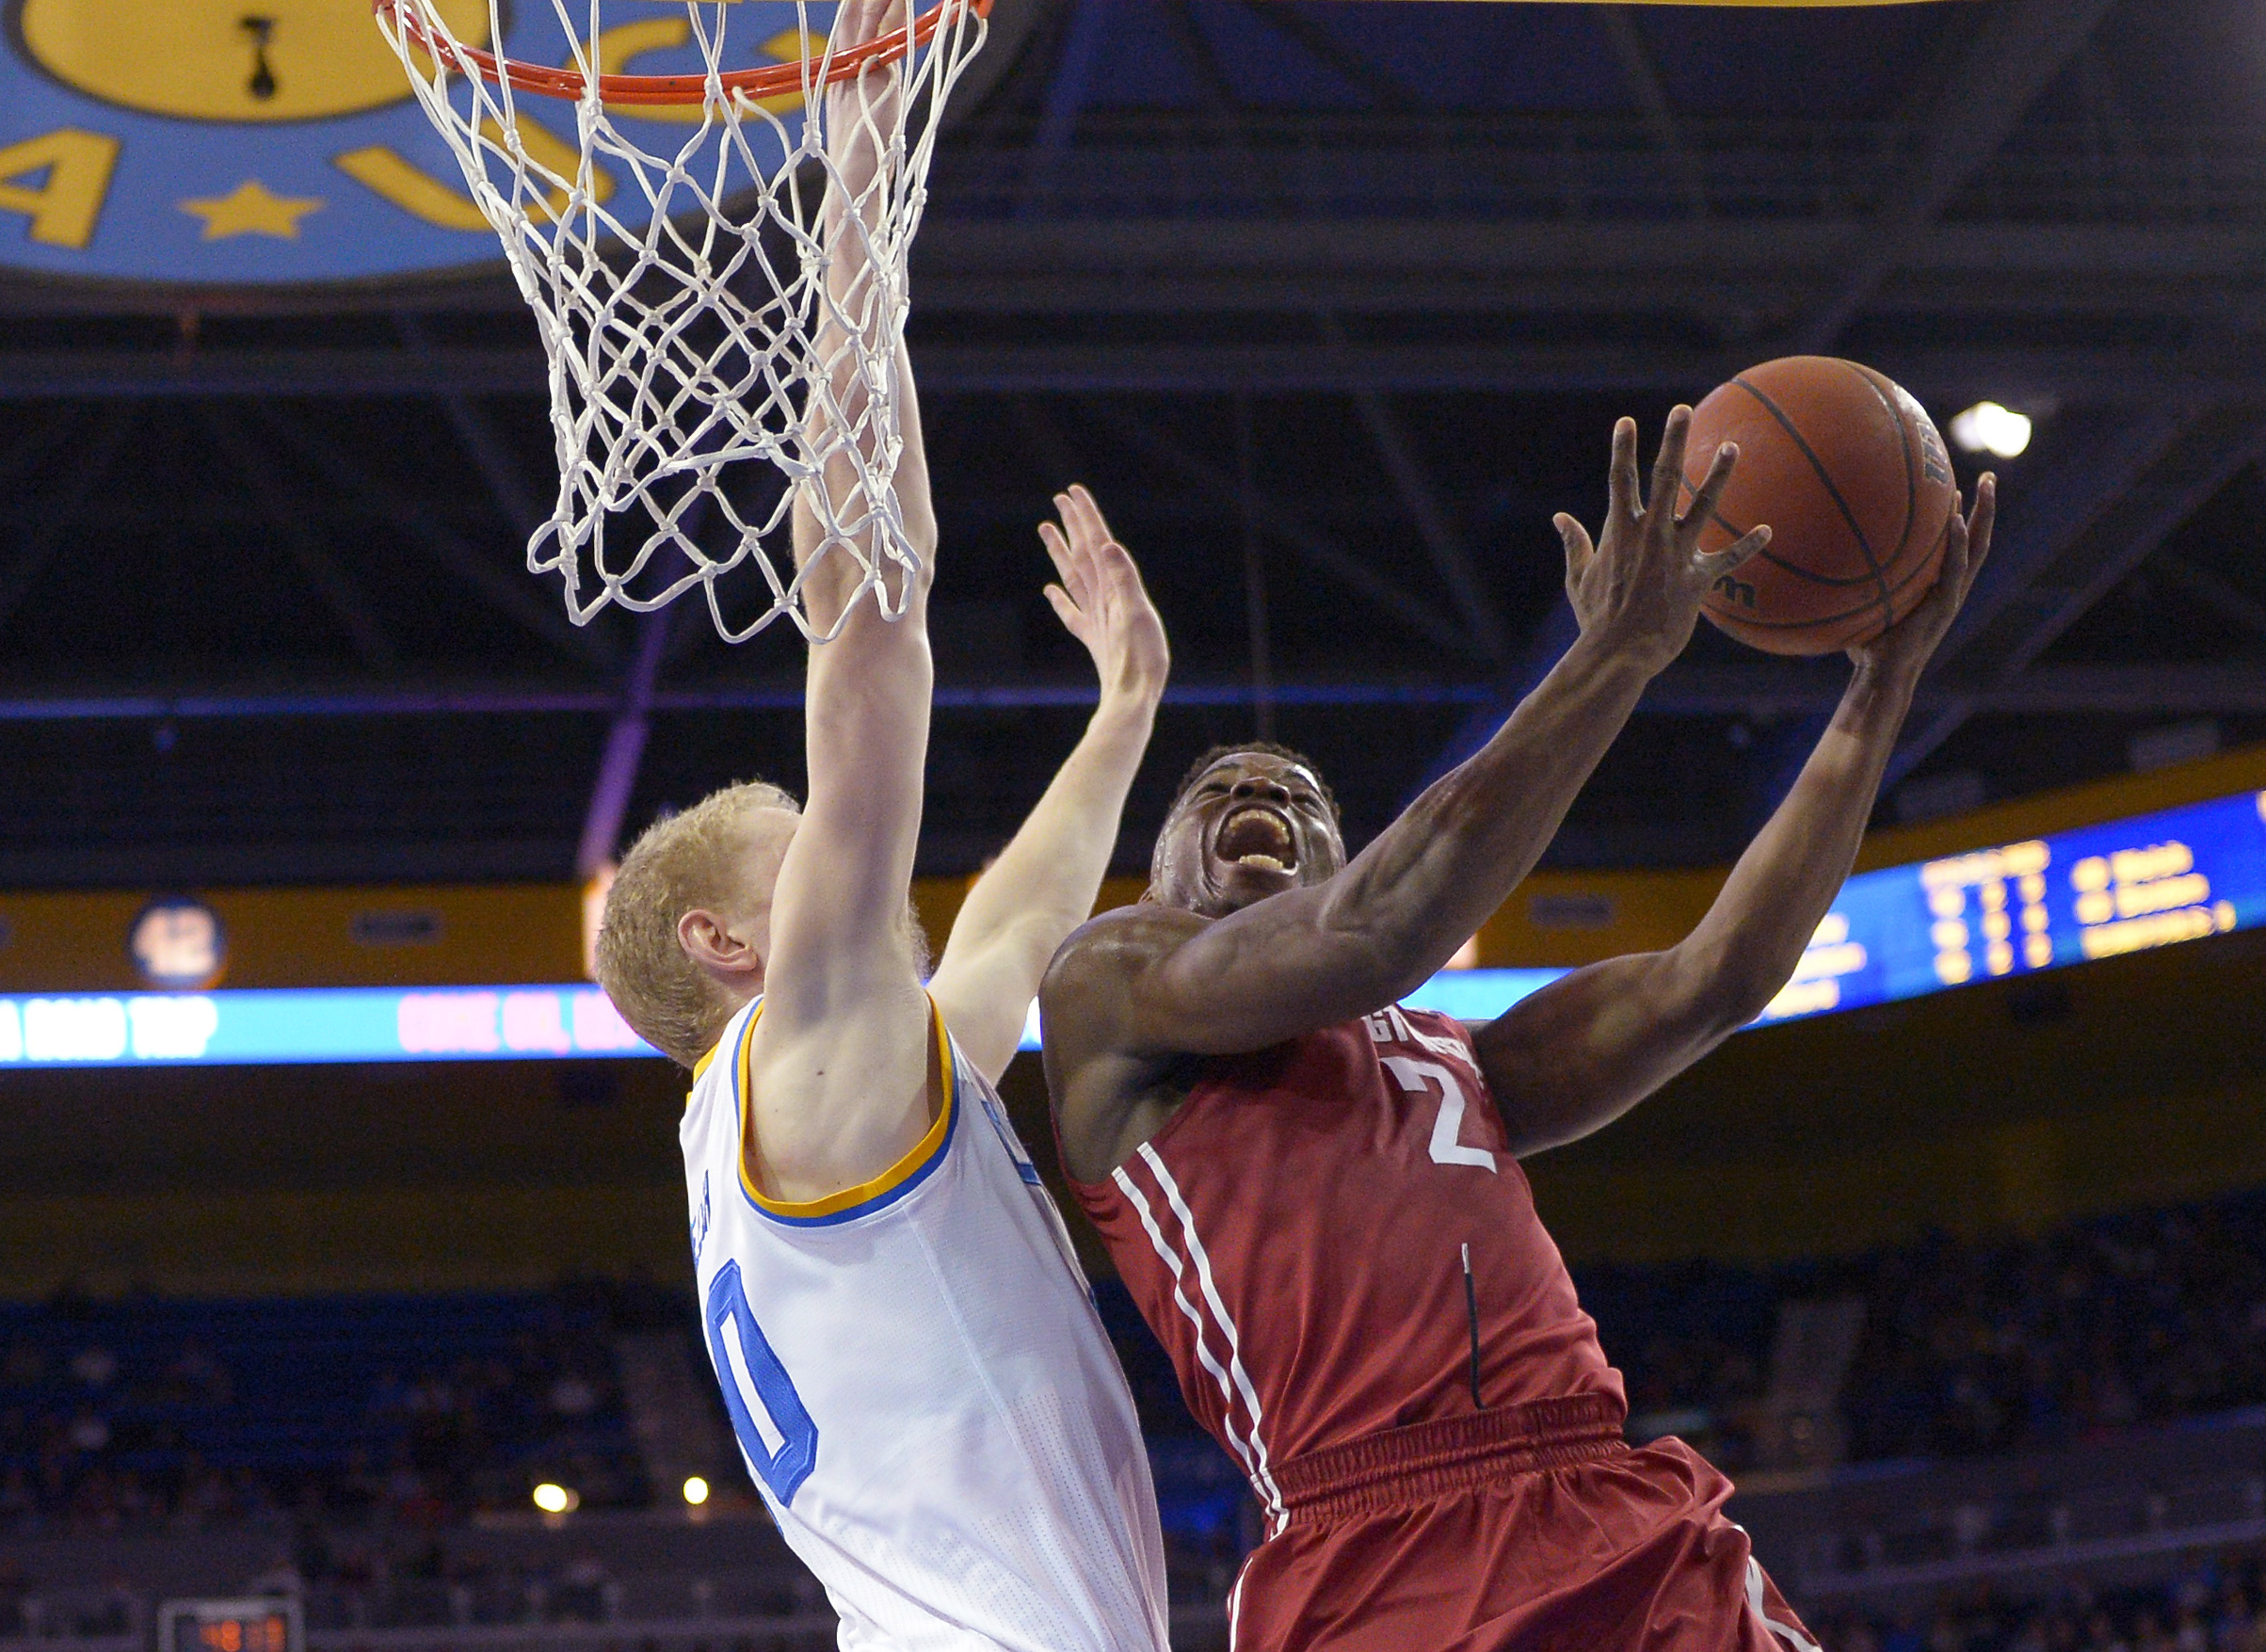 Washington State guard Ike Iroegbu, right, shoots as UCLA center Thomas Welsh defends during the second half of an NCAA college basketball game Saturday, Jan. 30, 2016, in Los Angeles. UCLA won 83-50. (AP Photo/Mark J. Terrill)